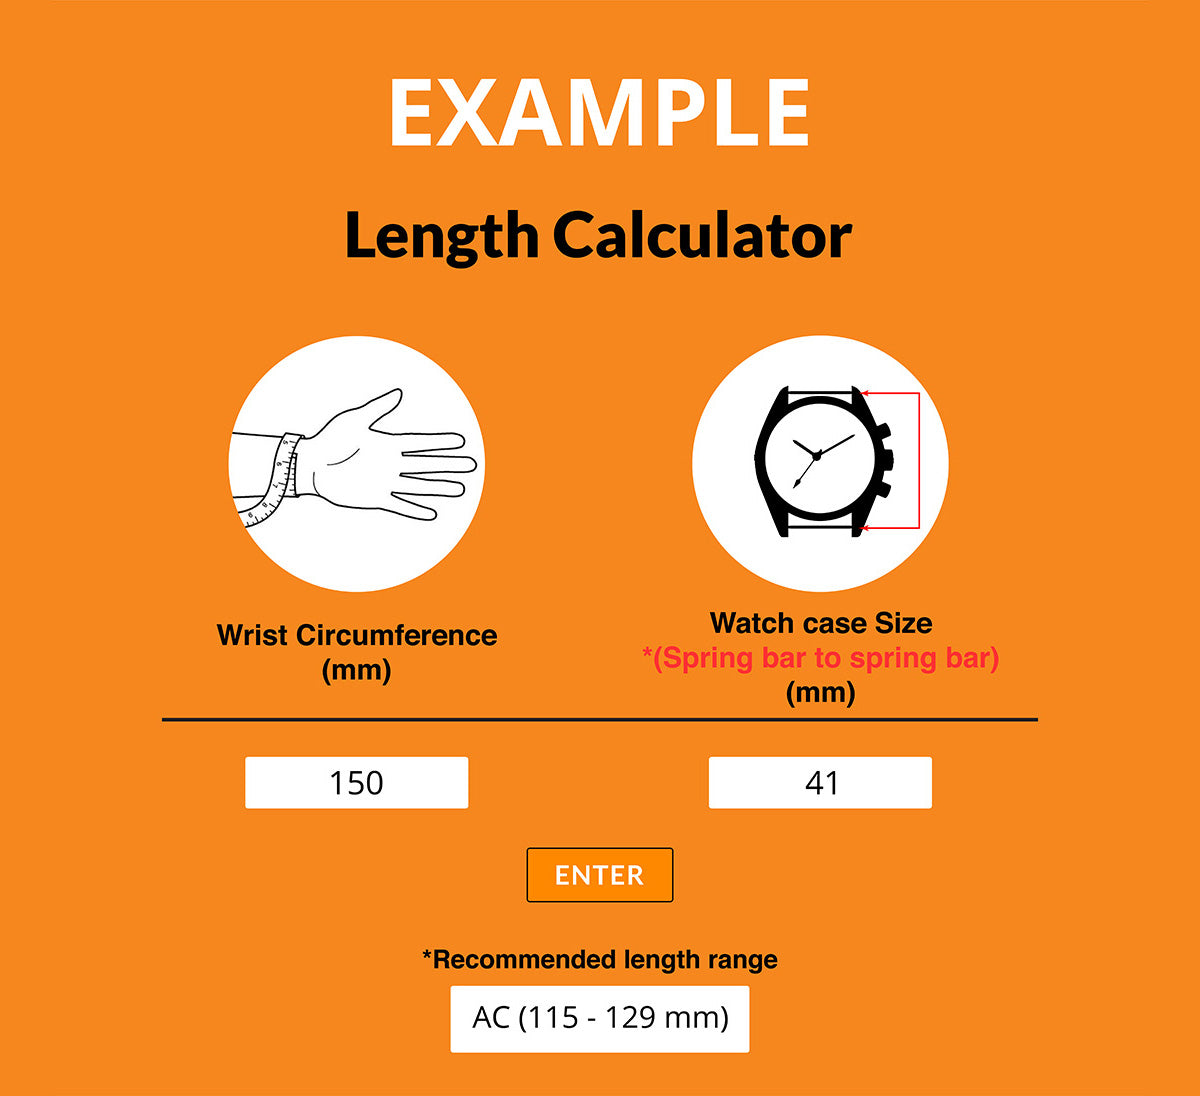 Wrist-length-Calculator-infographic-example